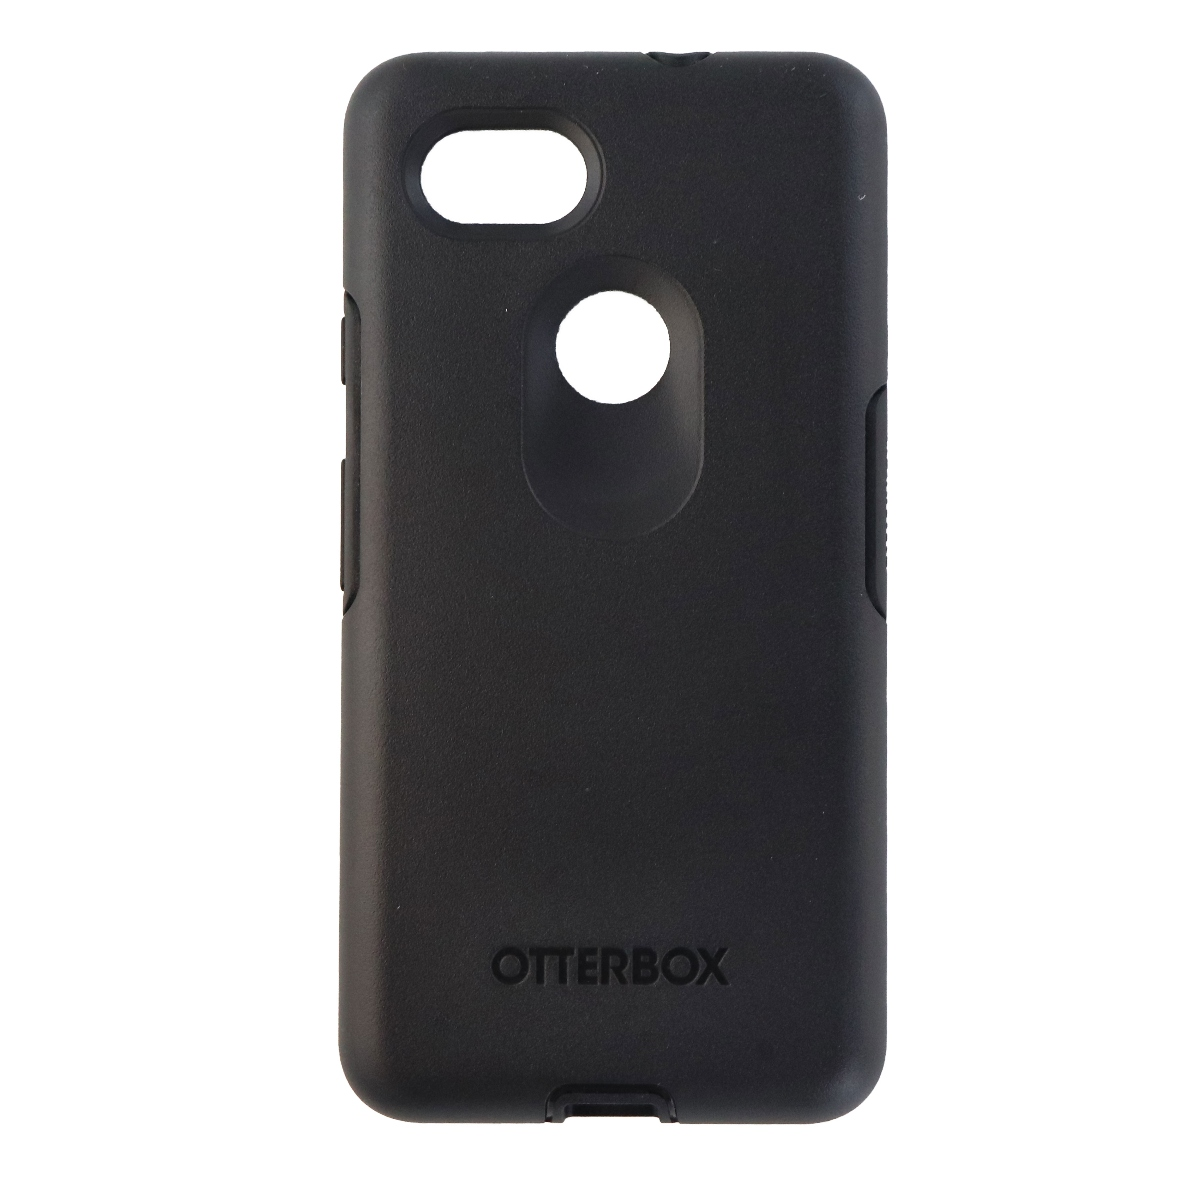 OtterBox Symmetry Series Hybrid Hard Case Cover for Google Pixel 2 XL - Black